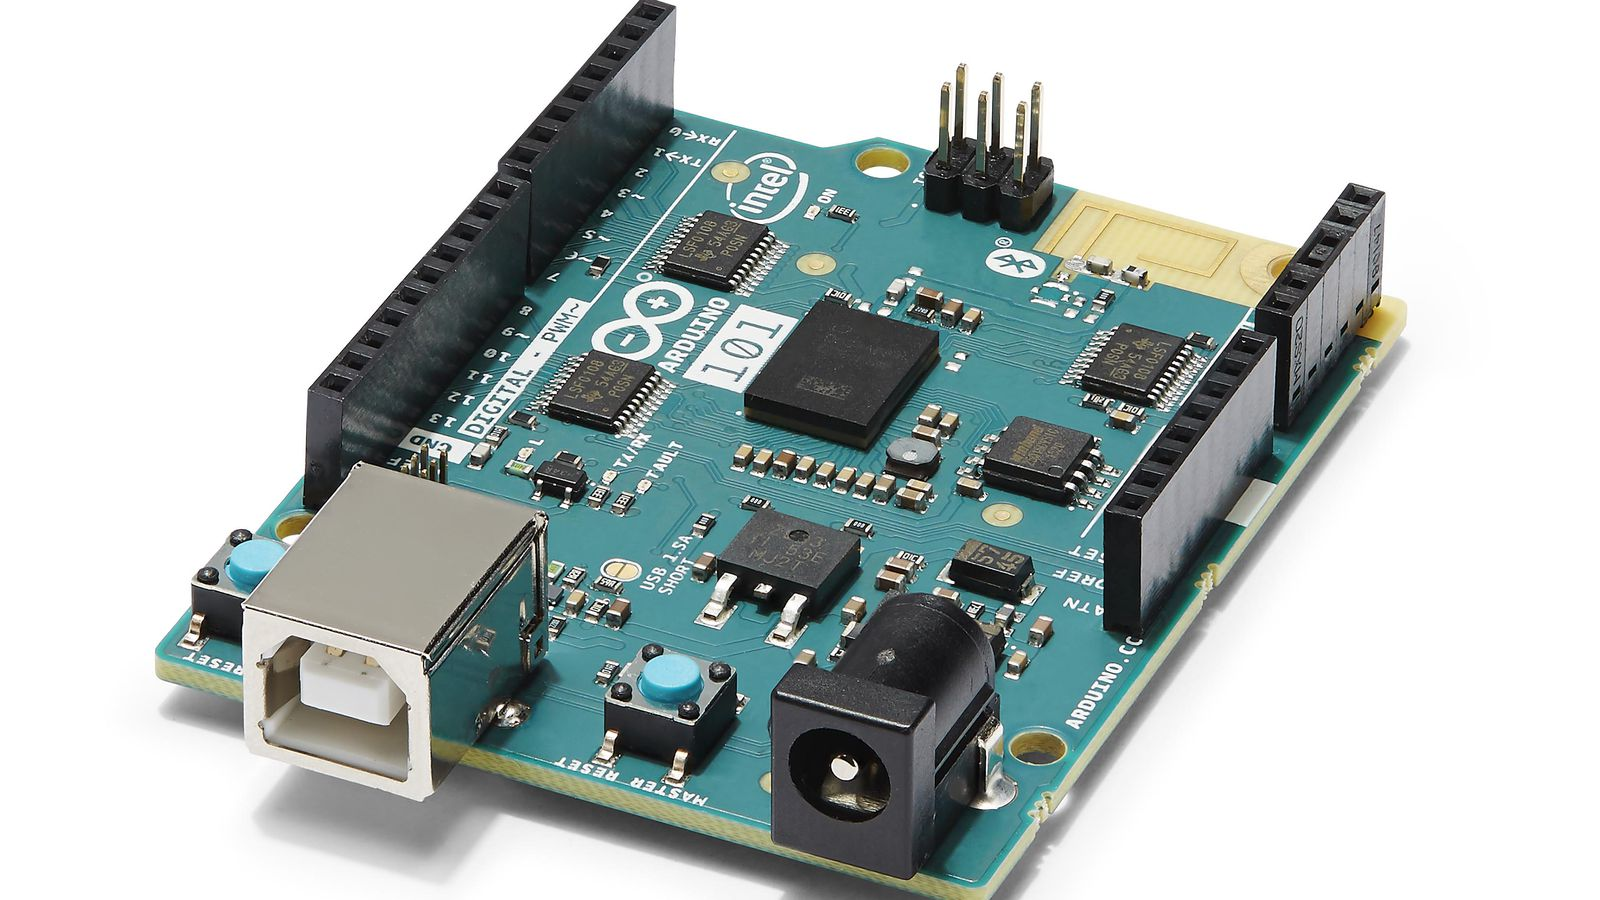 This new arduino board is the first product to use intel s